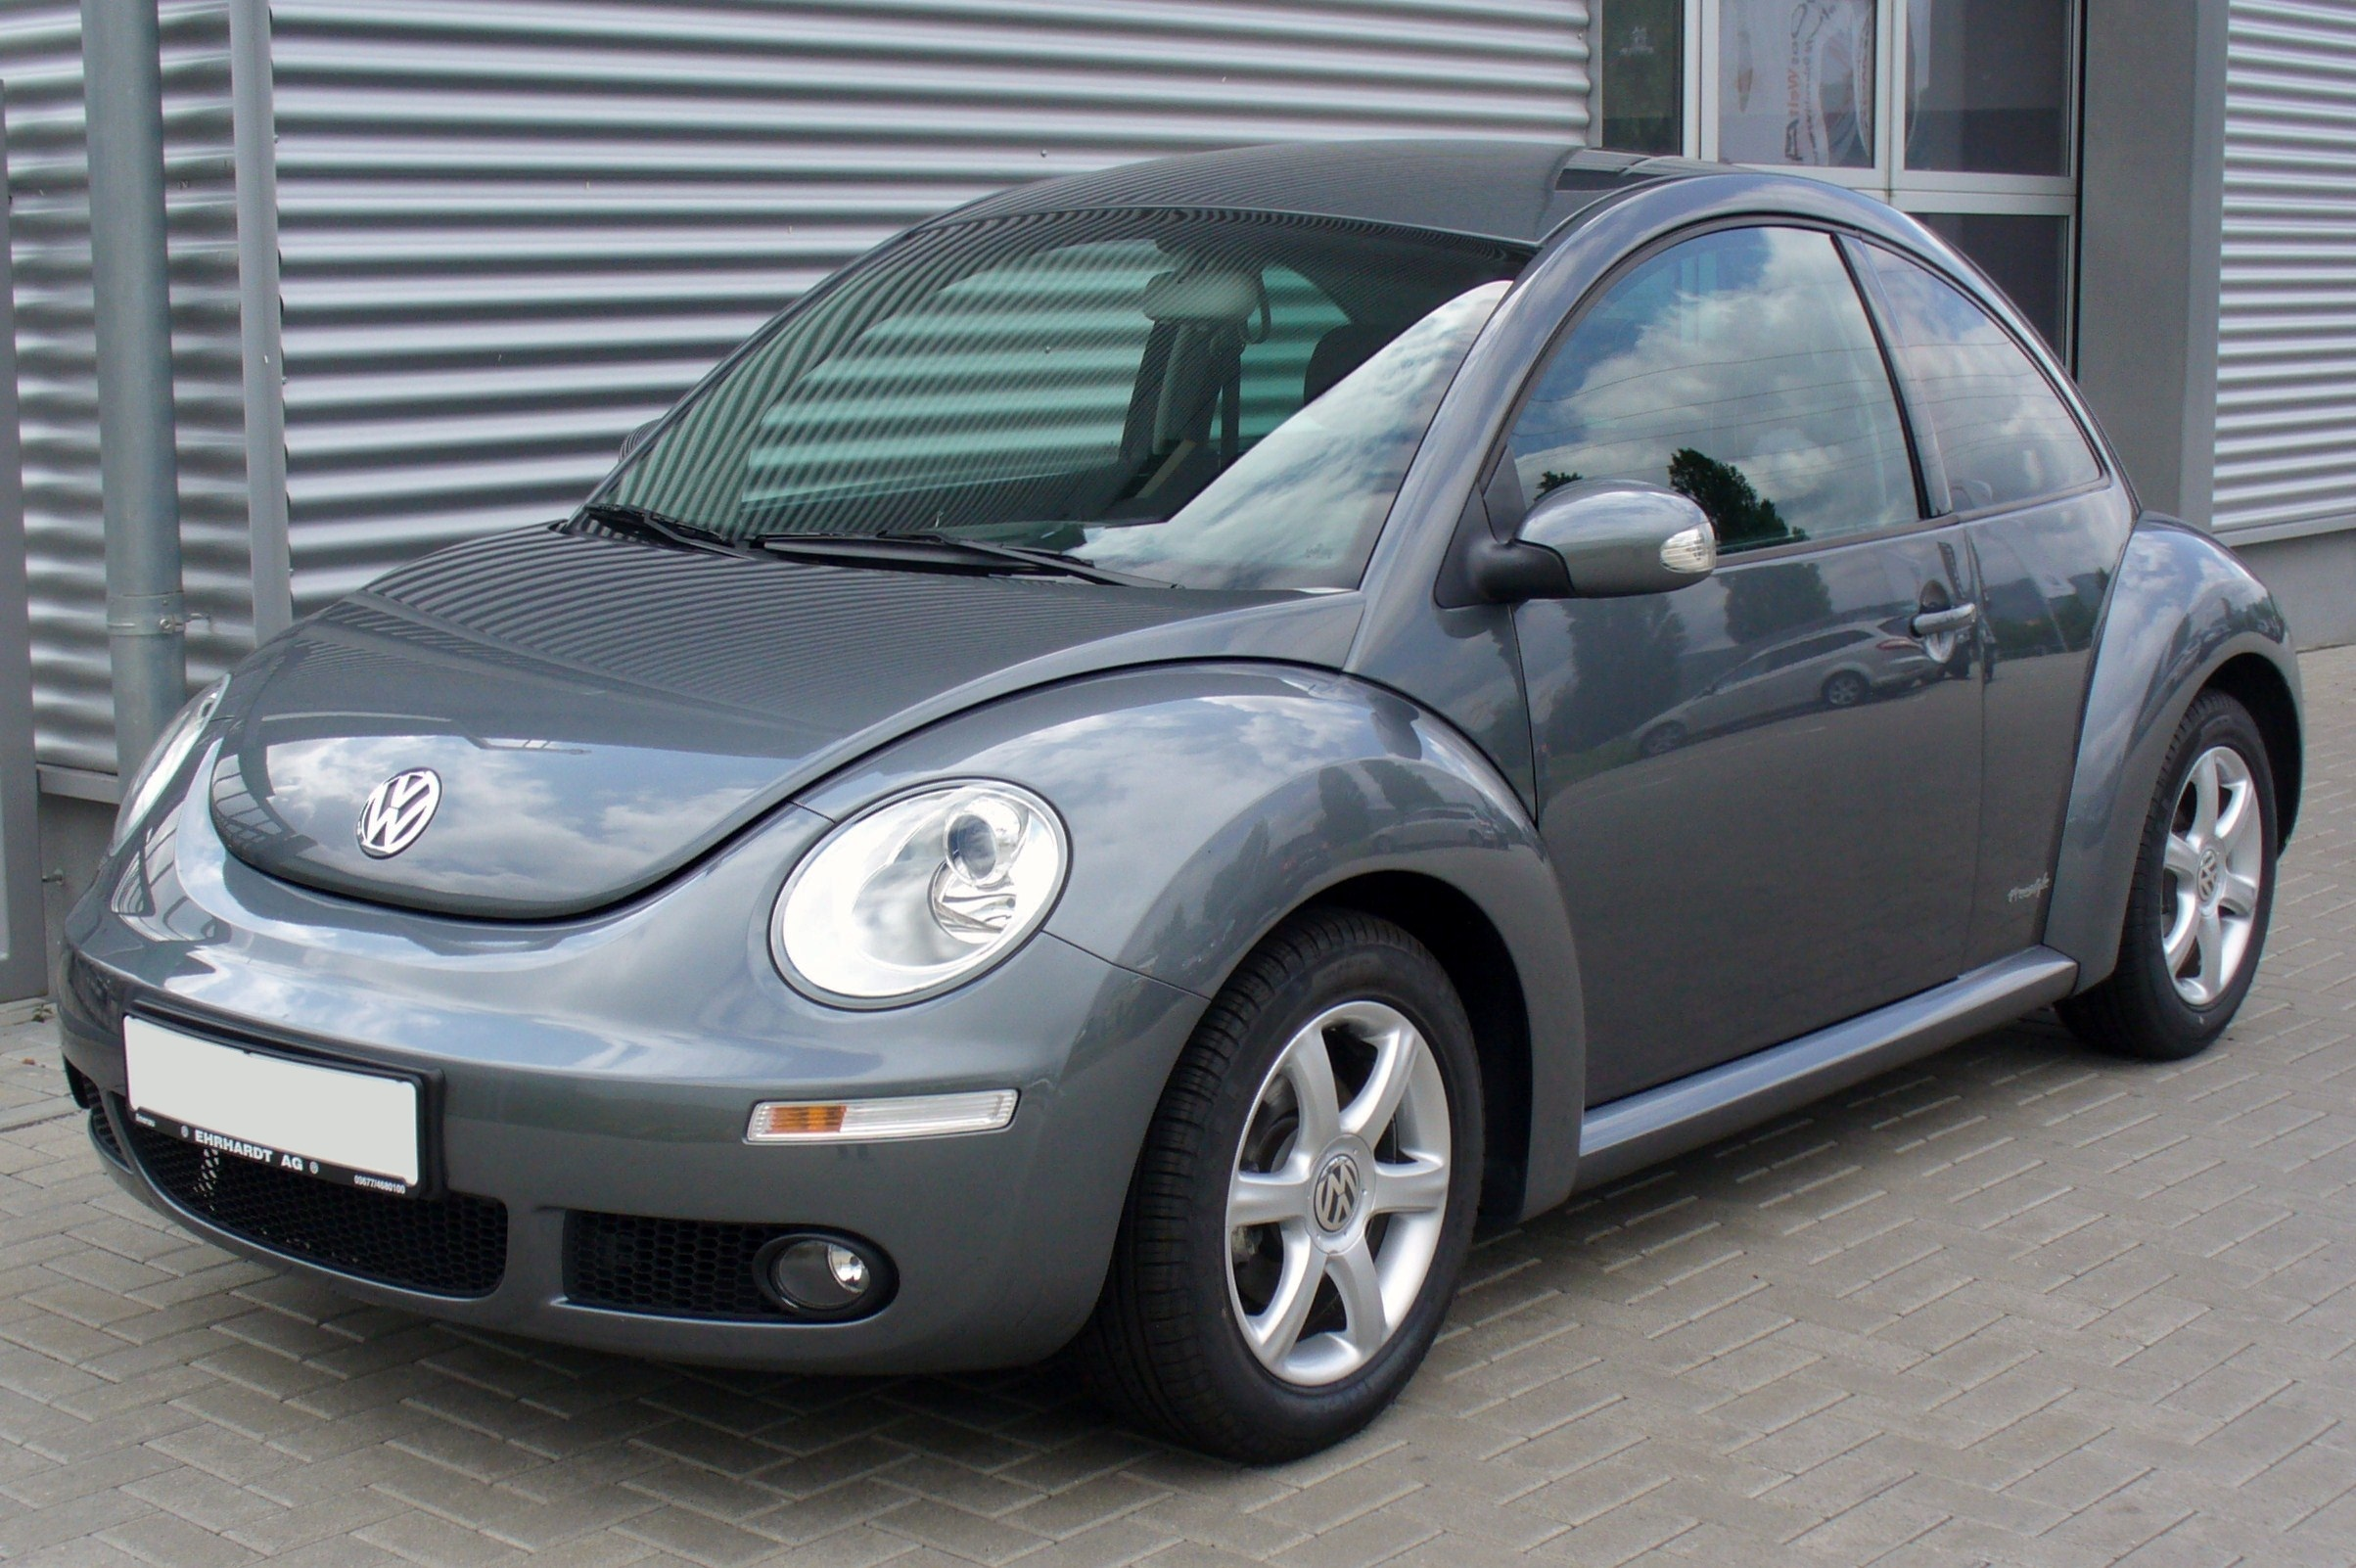 [Image: VW_New_Beetle_1.9_TDI_Freestyle_Platinum_Grey.JPG]